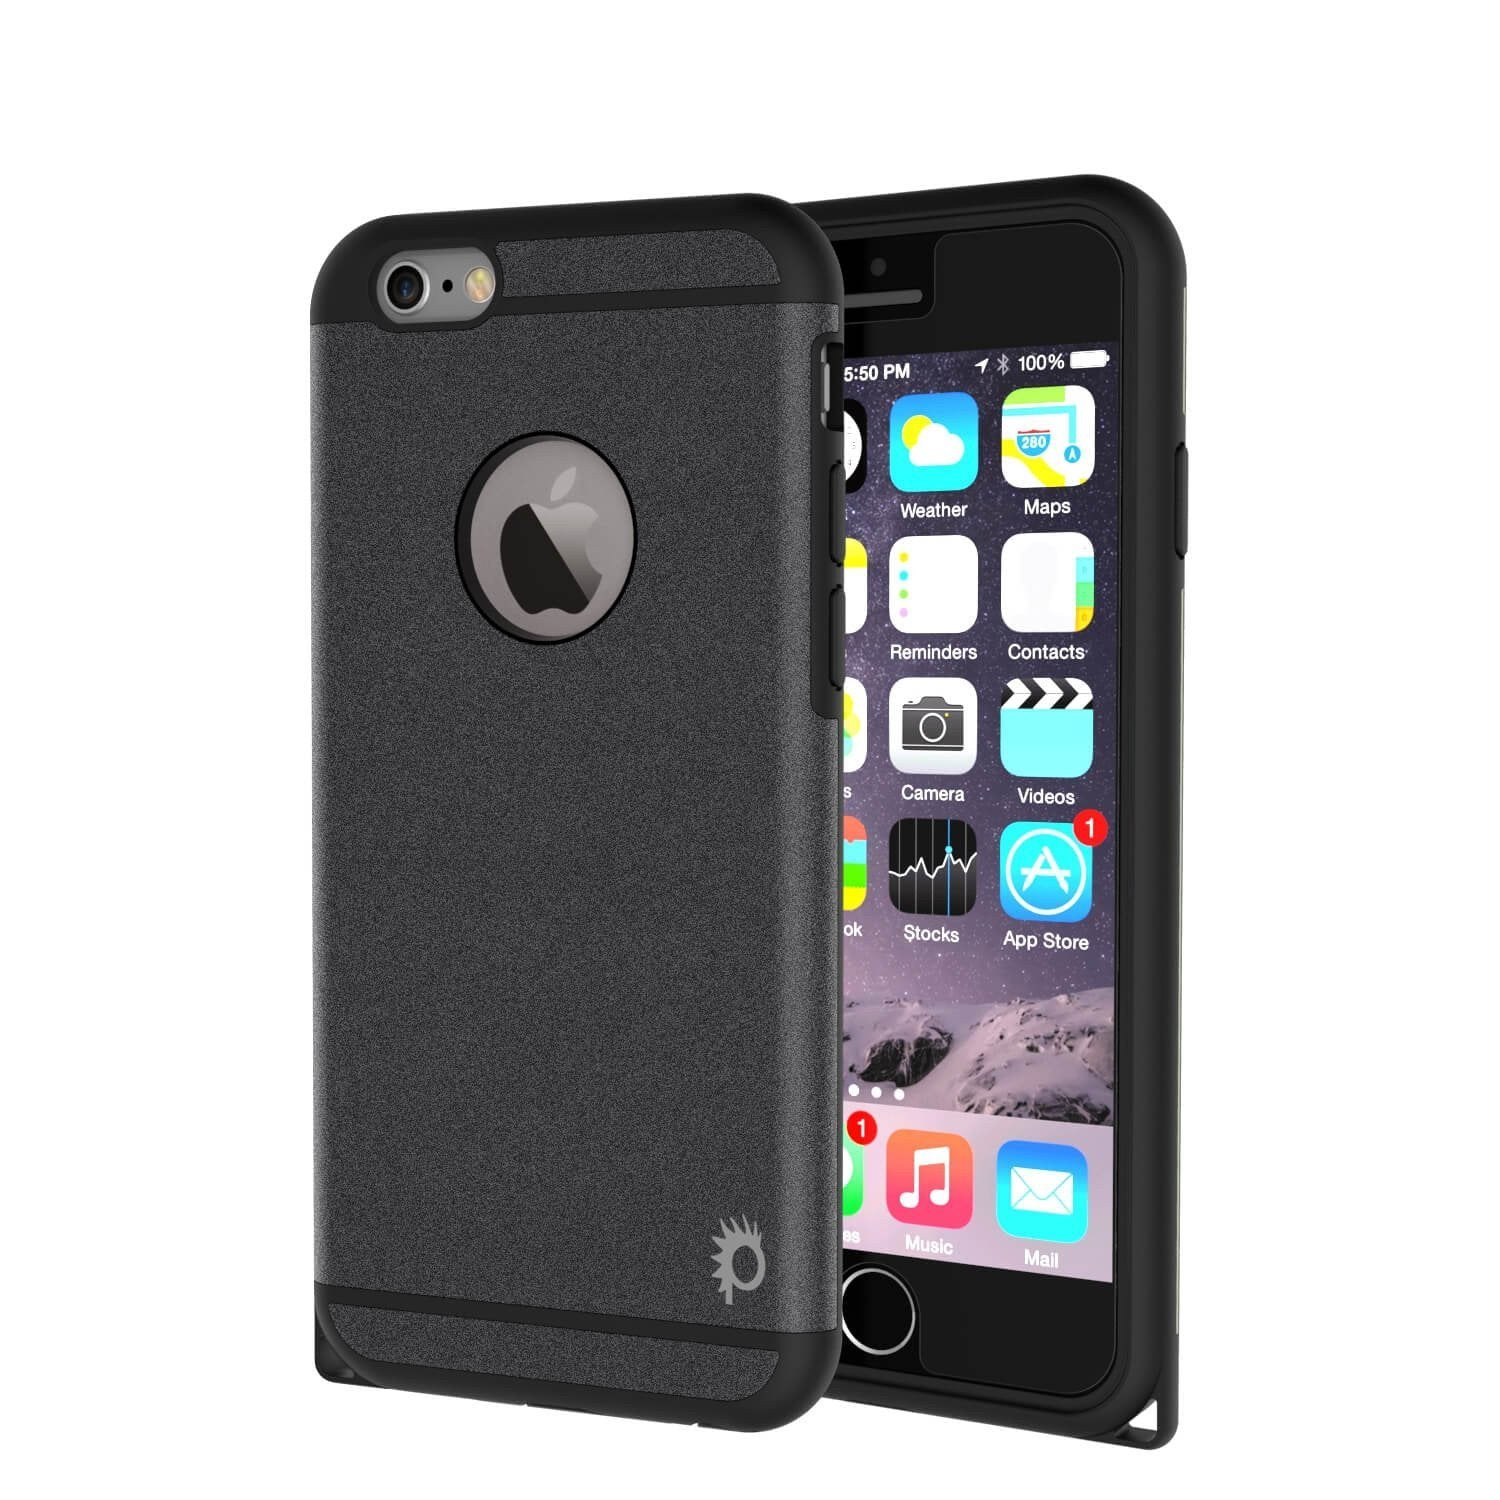 iPhone 5s/5/SE Case PunkCase Galactic Black Series Slim w/ Tempered Glass | Lifetime Warranty